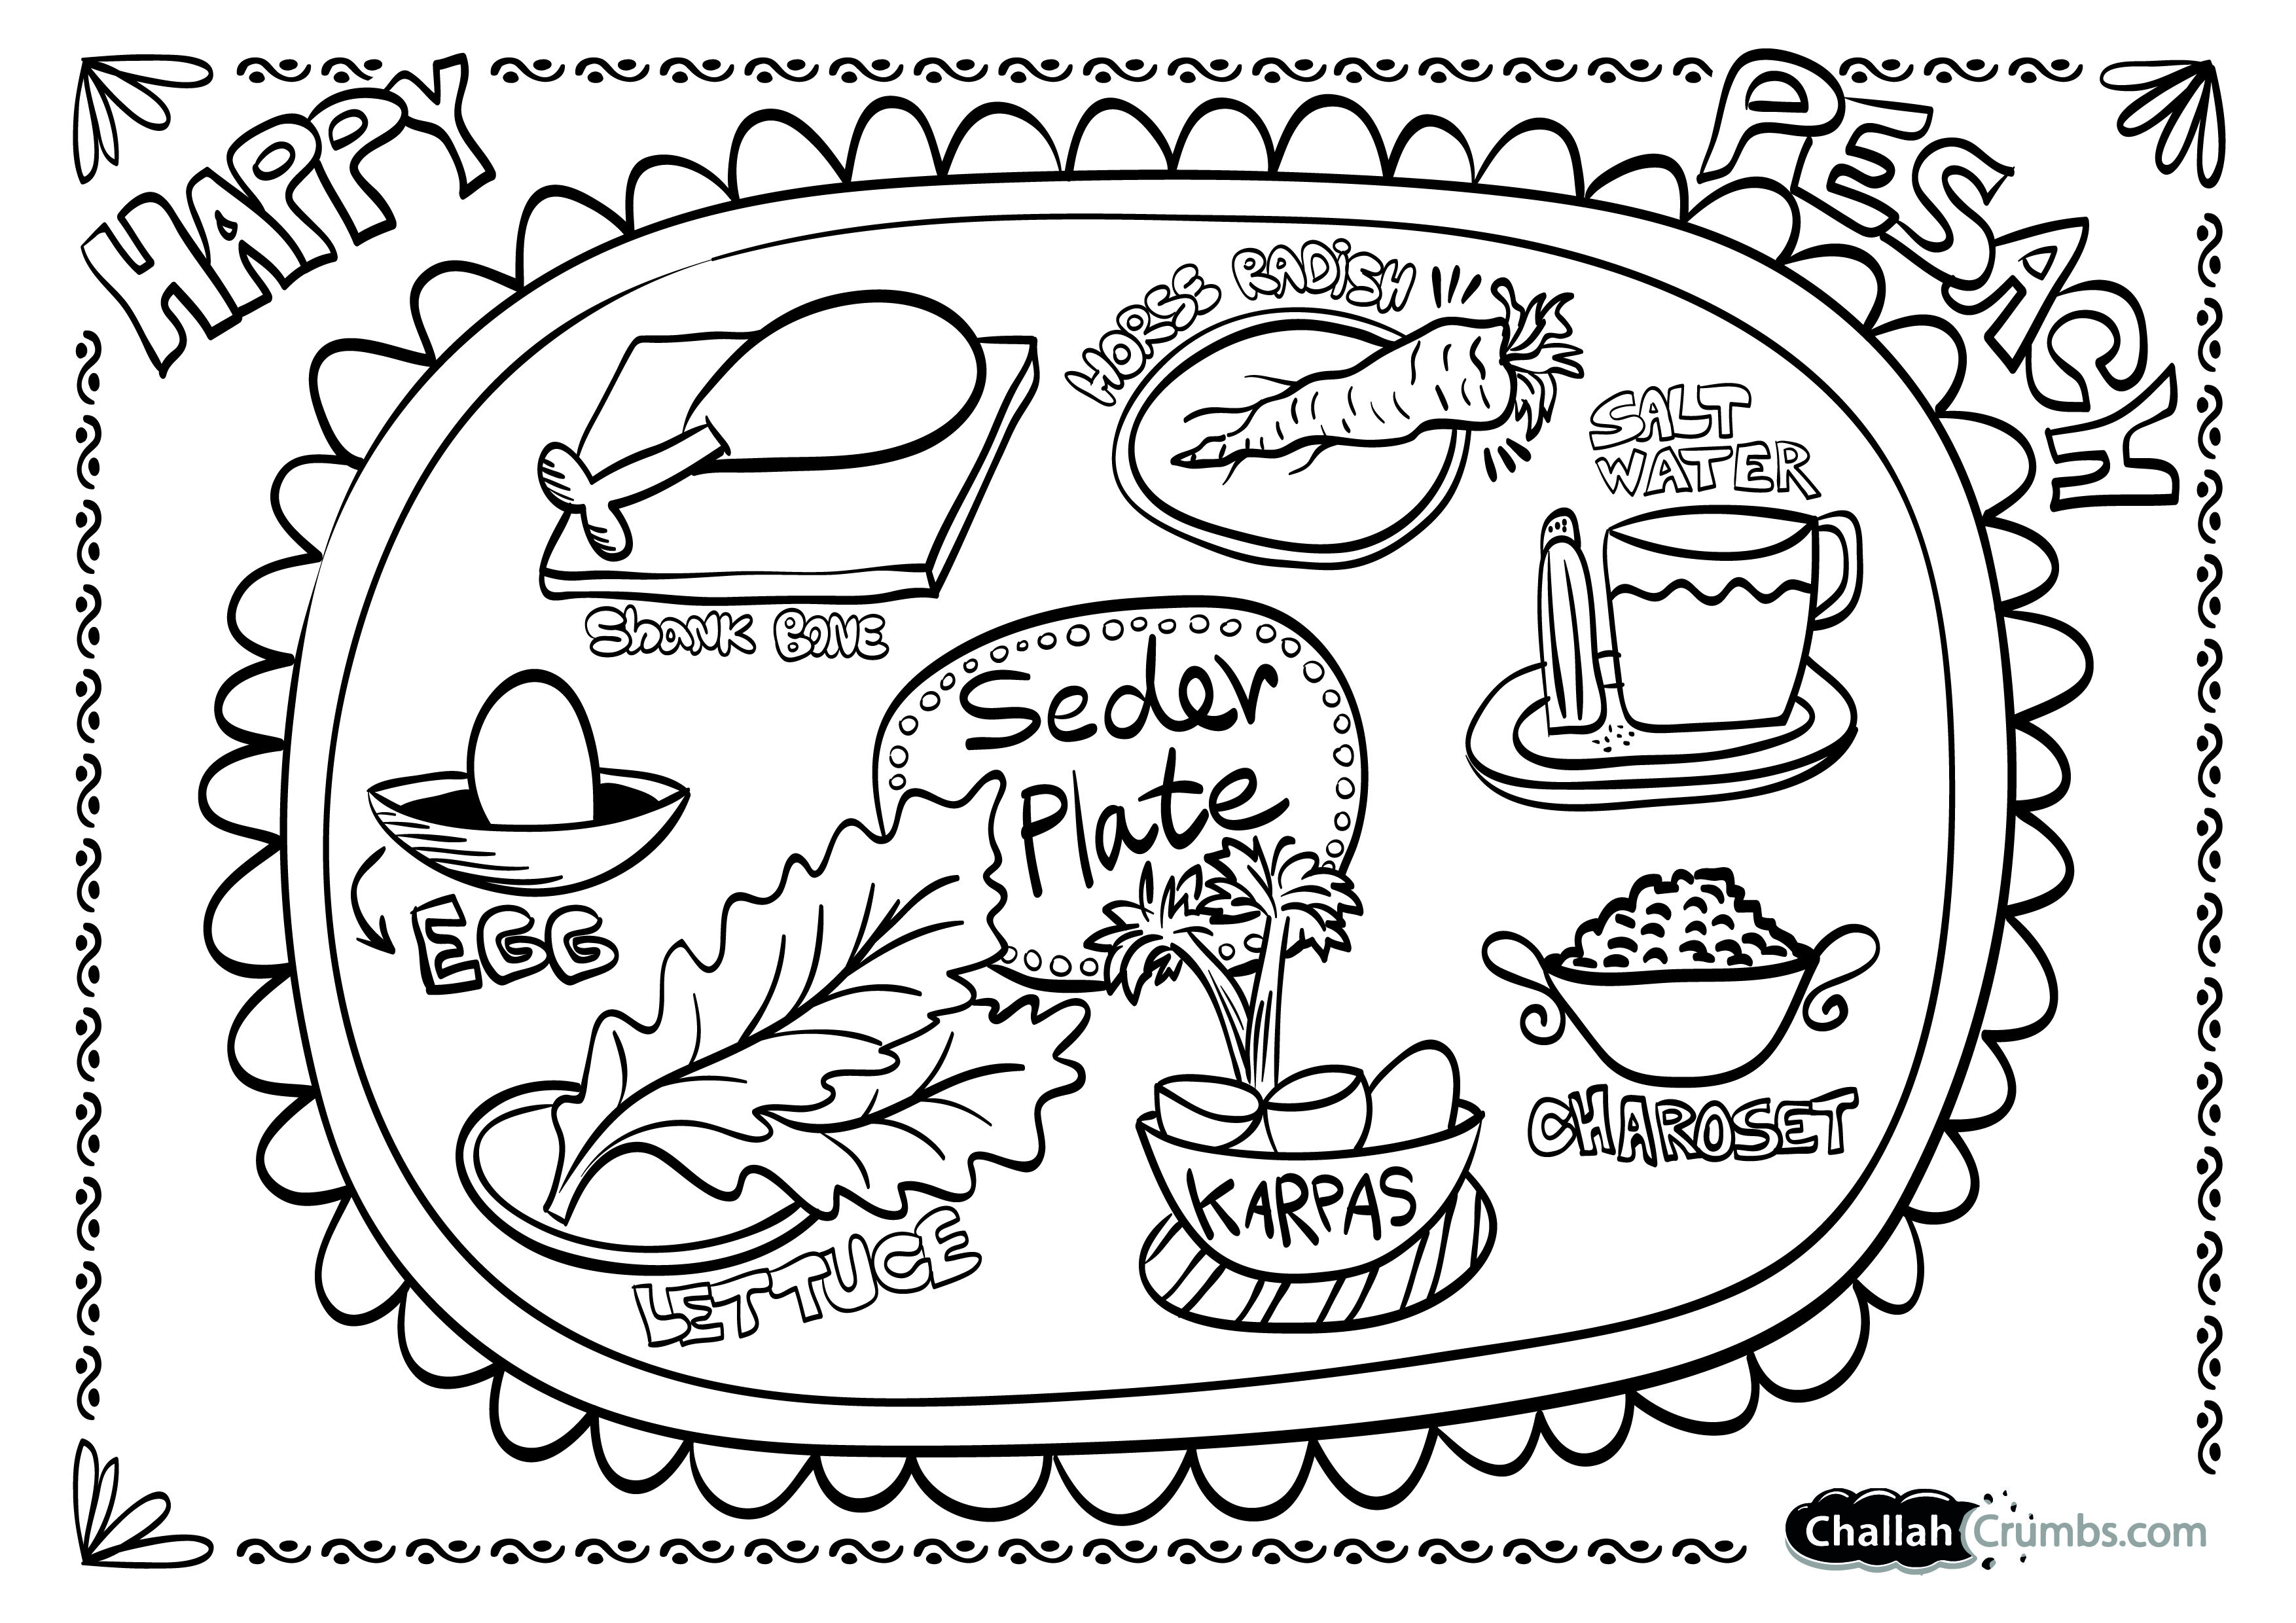 Coloring Page Seder Plate Challah Crumbs Seder Plate Passover Crafts Seder